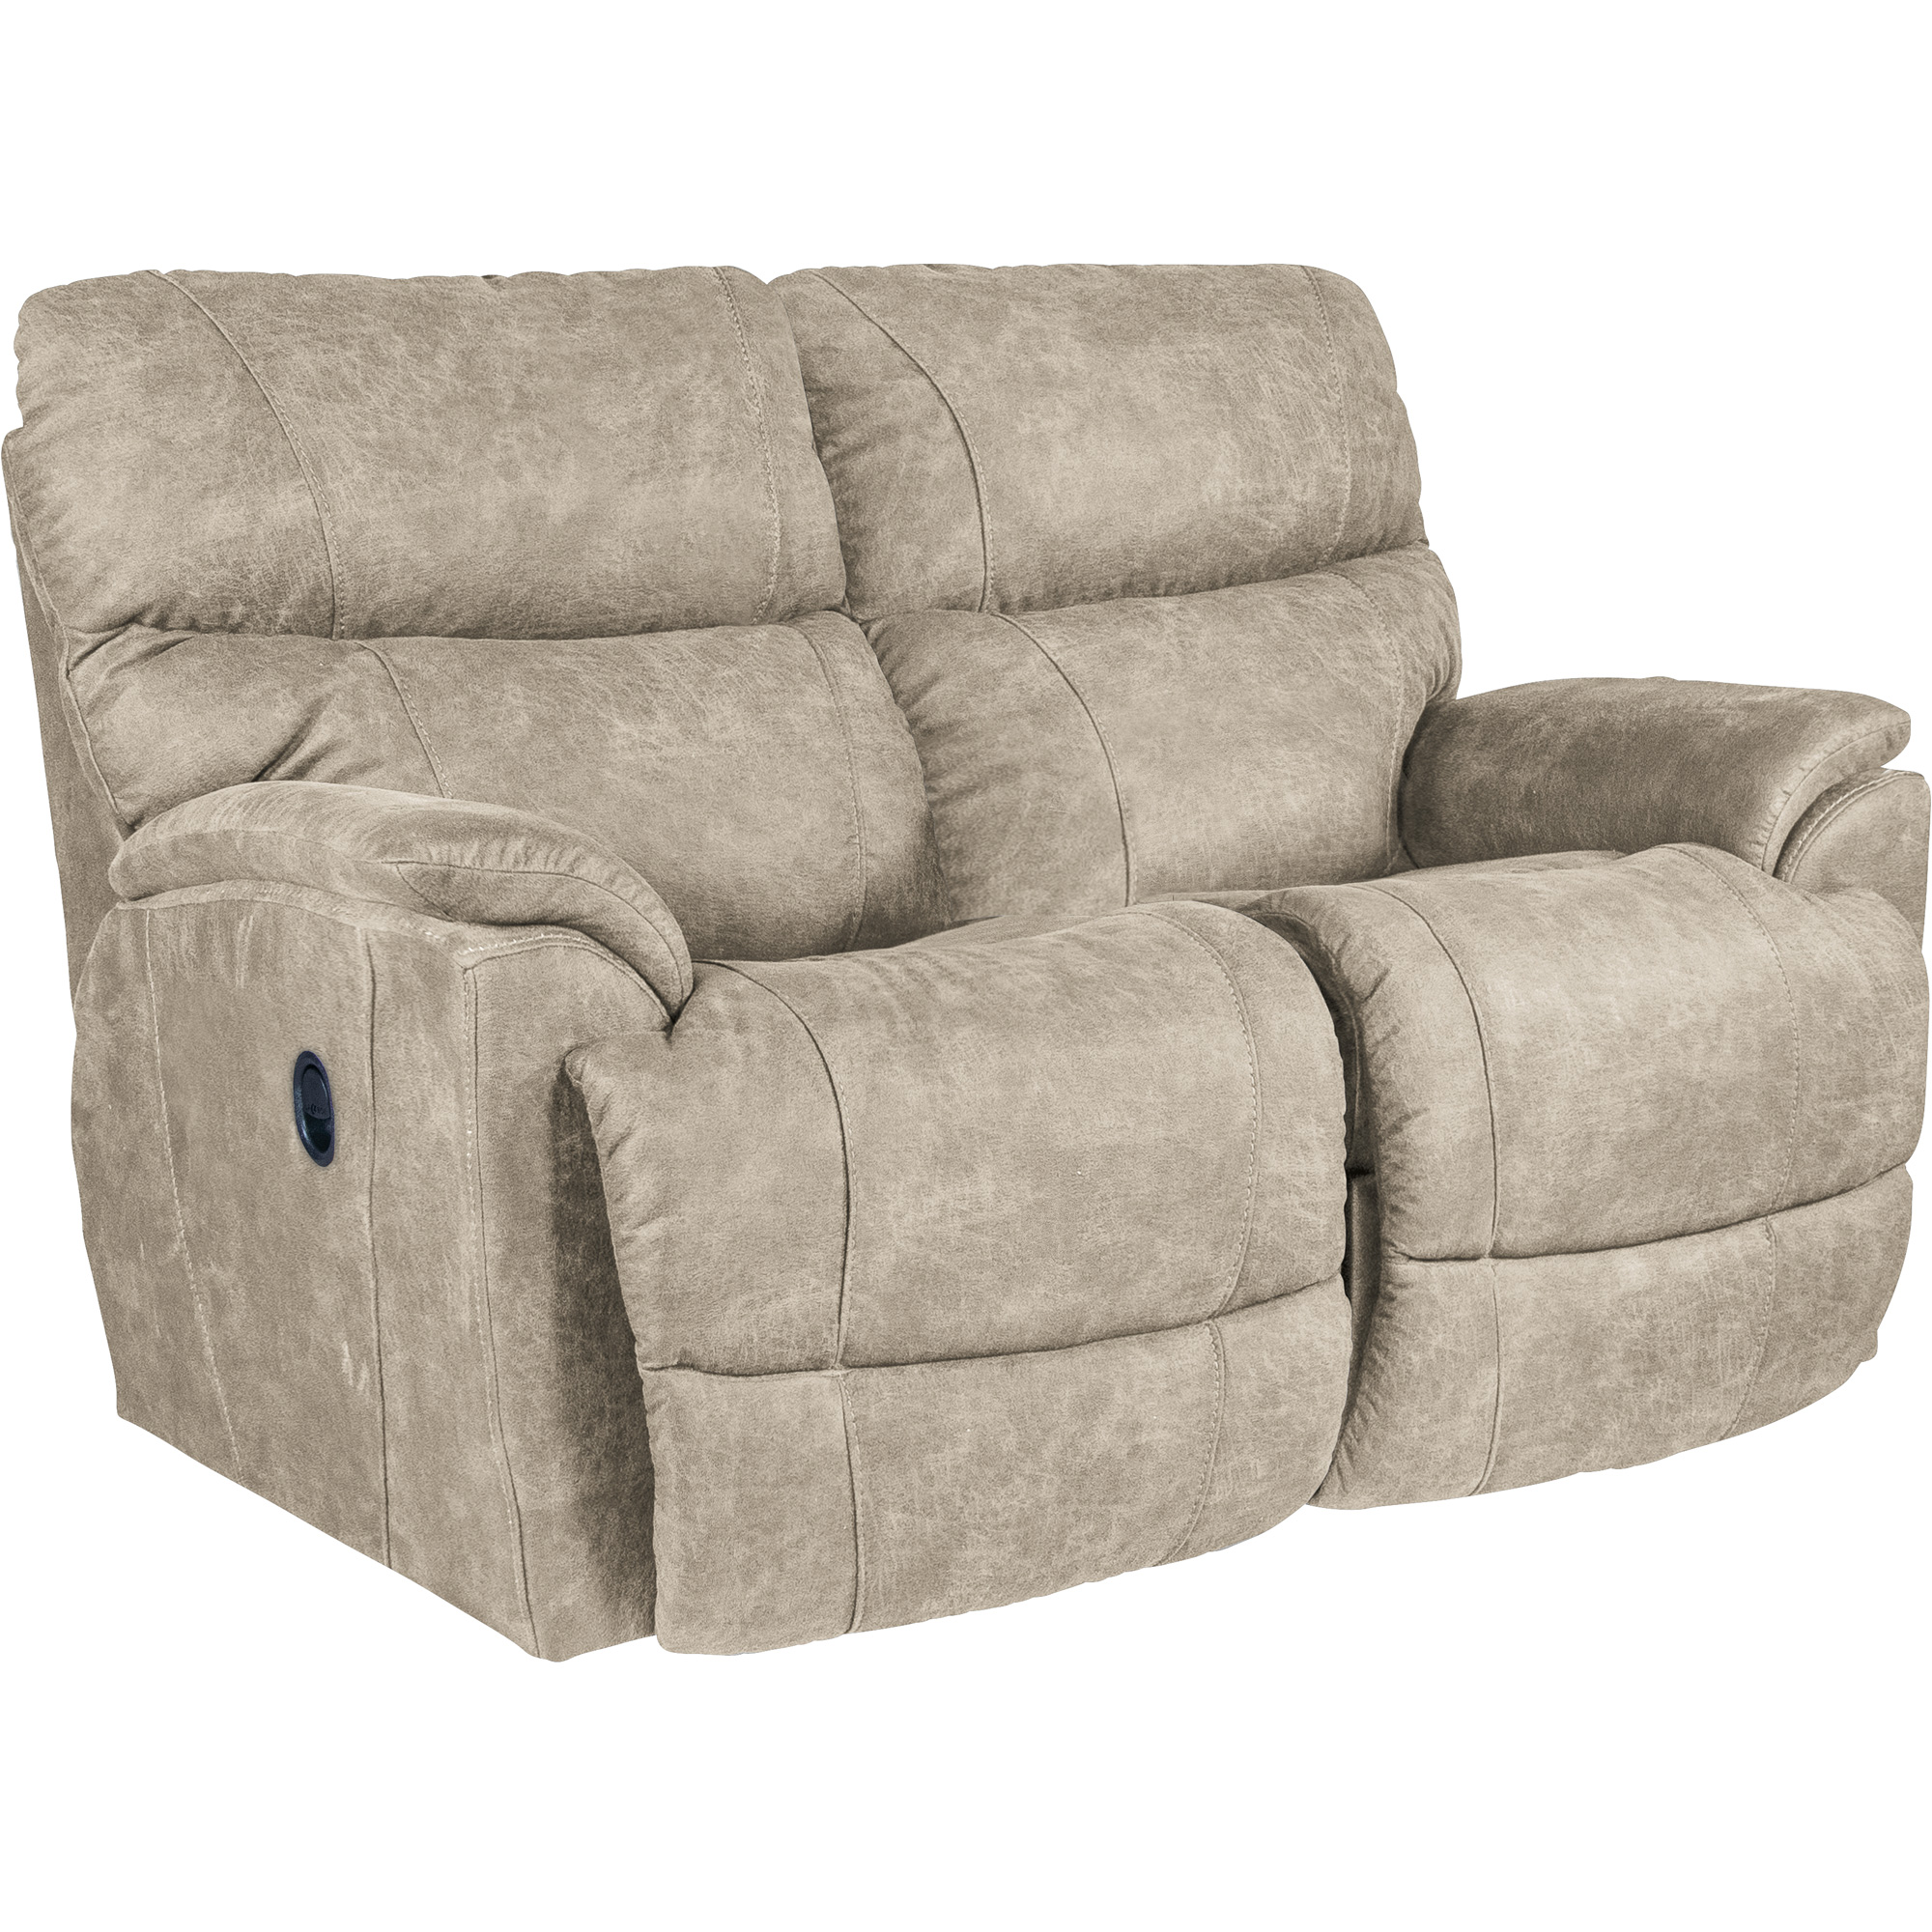 La-Z-Boy | Trouper Stucco Reclining Loveseat Sofa